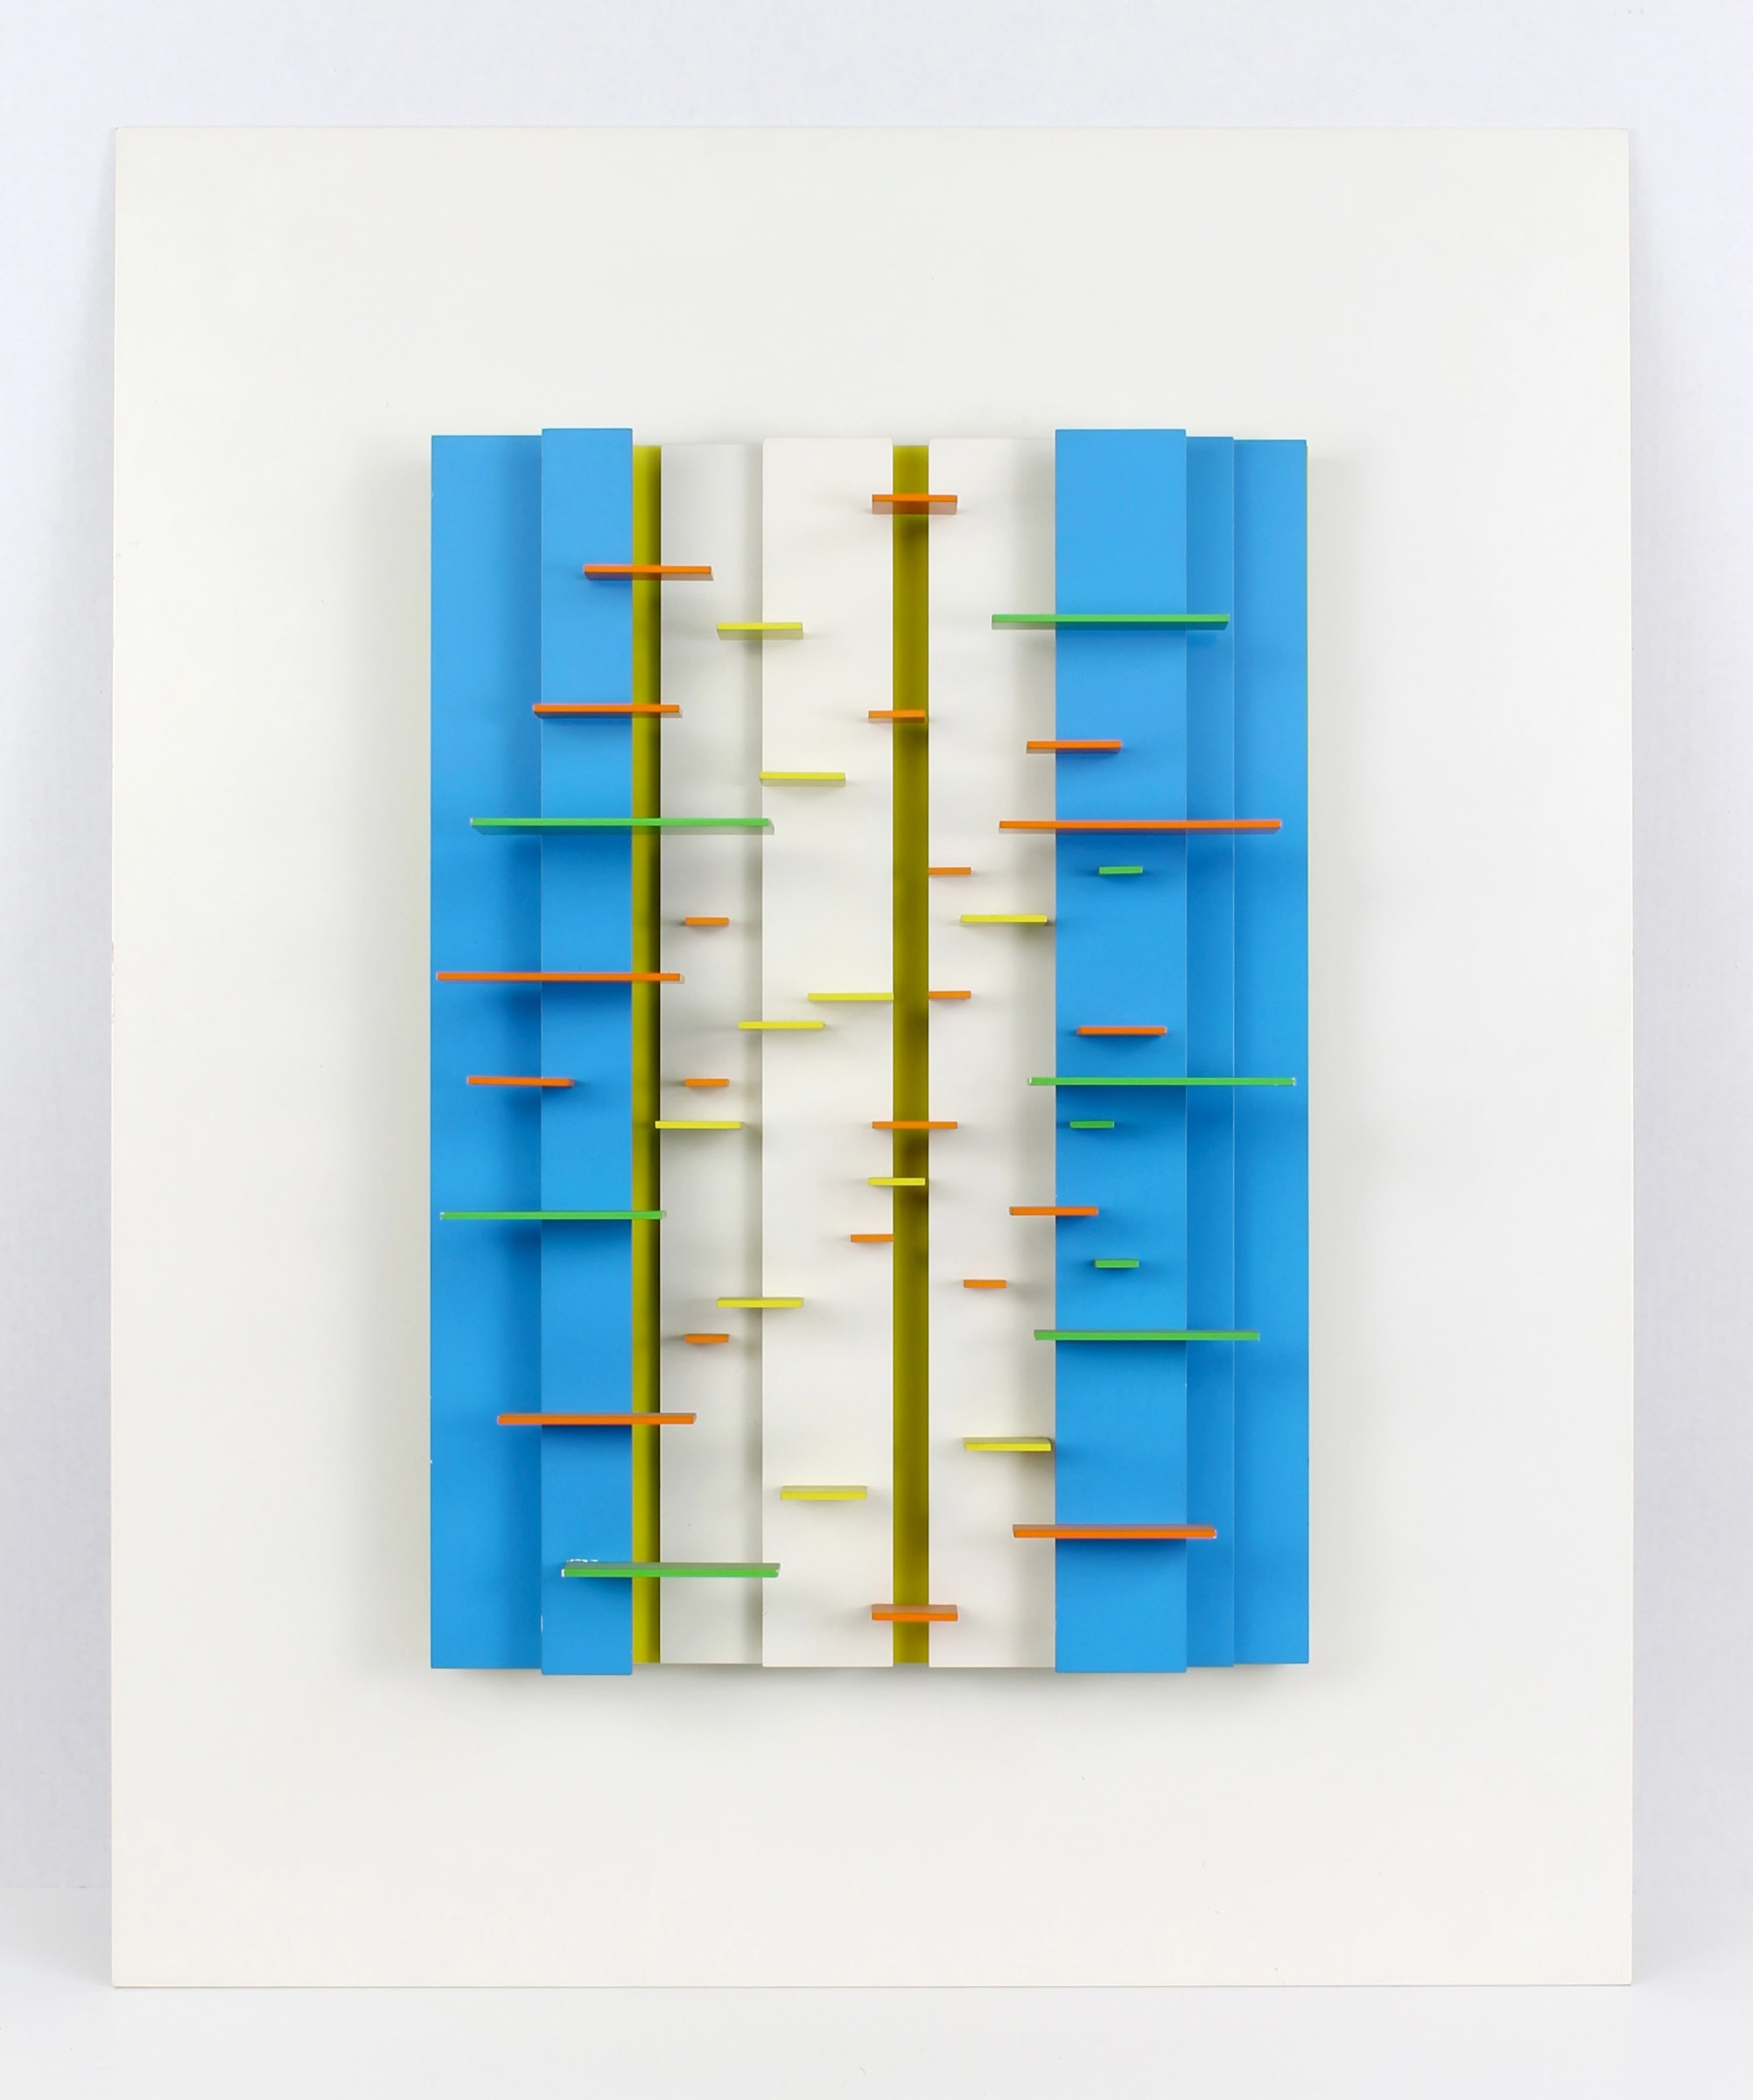 """<span class=""""link fancybox-details-link""""><a href=""""/artists/168-charles-biederman/works/10295-charles-biederman-50-red-wing-1953-82/"""">View Detail Page</a></span><div class=""""artist""""><span class=""""artist""""><strong>CHARLES BIEDERMAN</strong></span></div><div class=""""title""""><em>#50 Red Wing</em>, 1953-82</div><div class=""""signed_and_dated"""">Signed on the reverse</div><div class=""""medium"""">Painted aluminium</div><div class=""""dimensions"""">86 x 70.5 x 11.5 cm<br /> 34 x 27 3/4 x 4 1/2 inches</div>"""